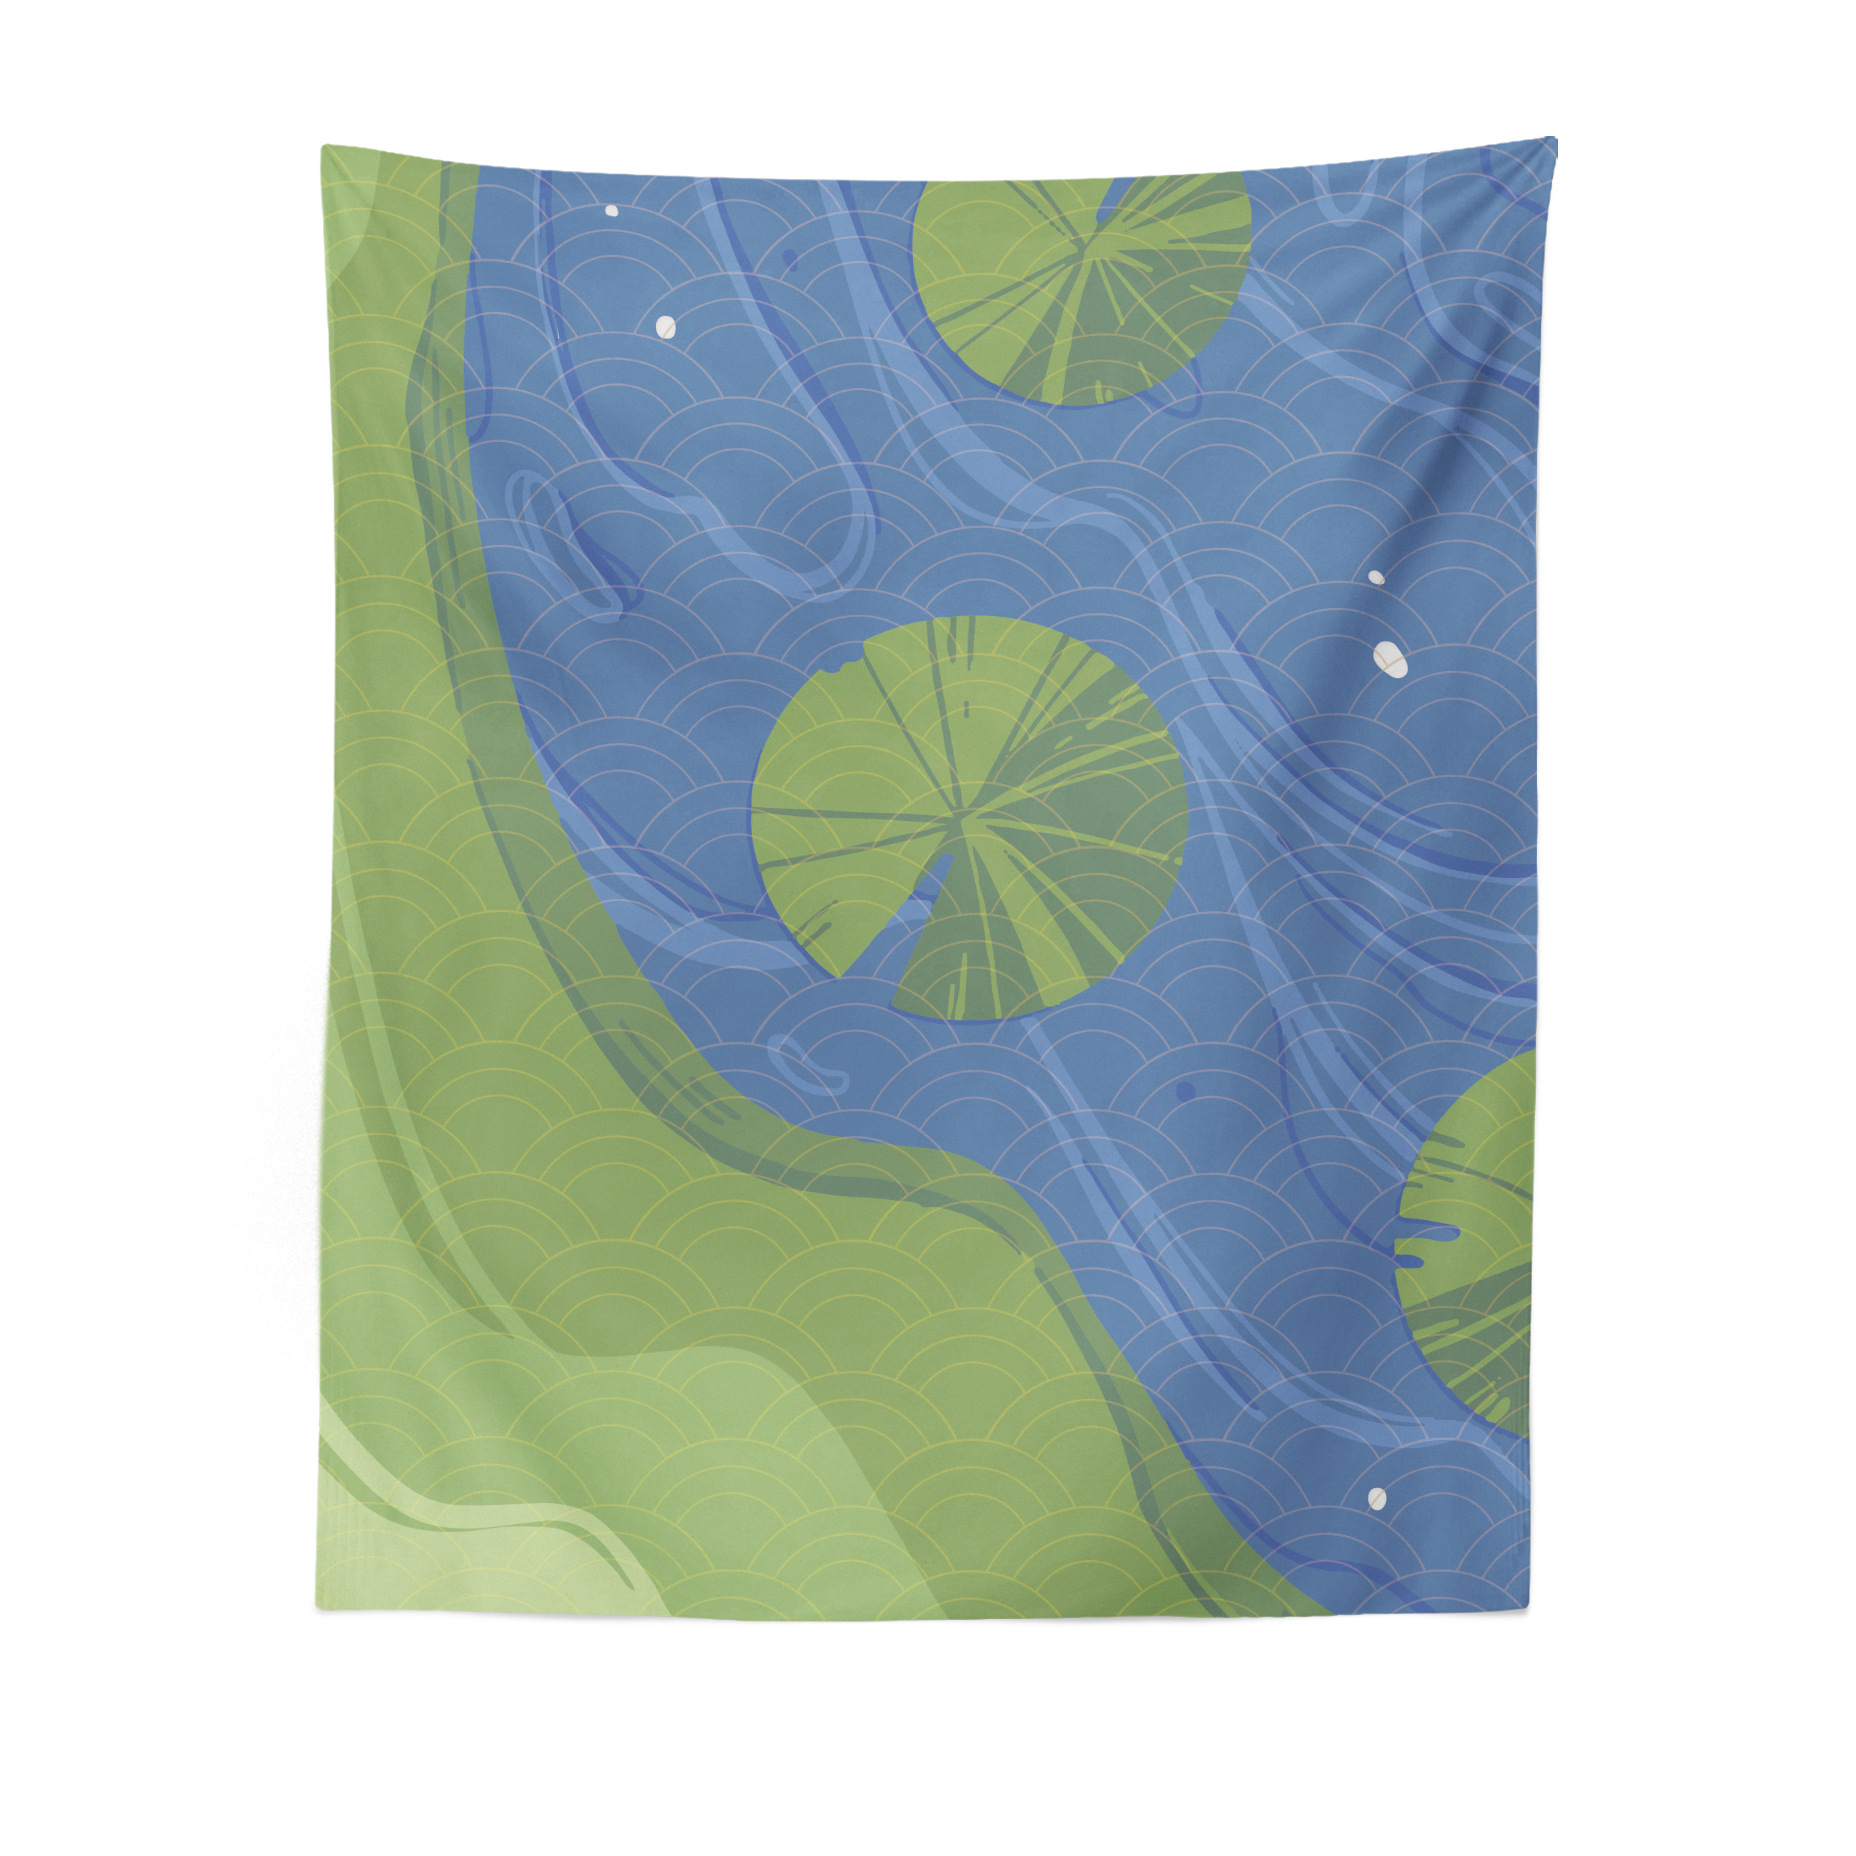 Minimalist Nature-Themed Wall Tapestry for Home Decoration